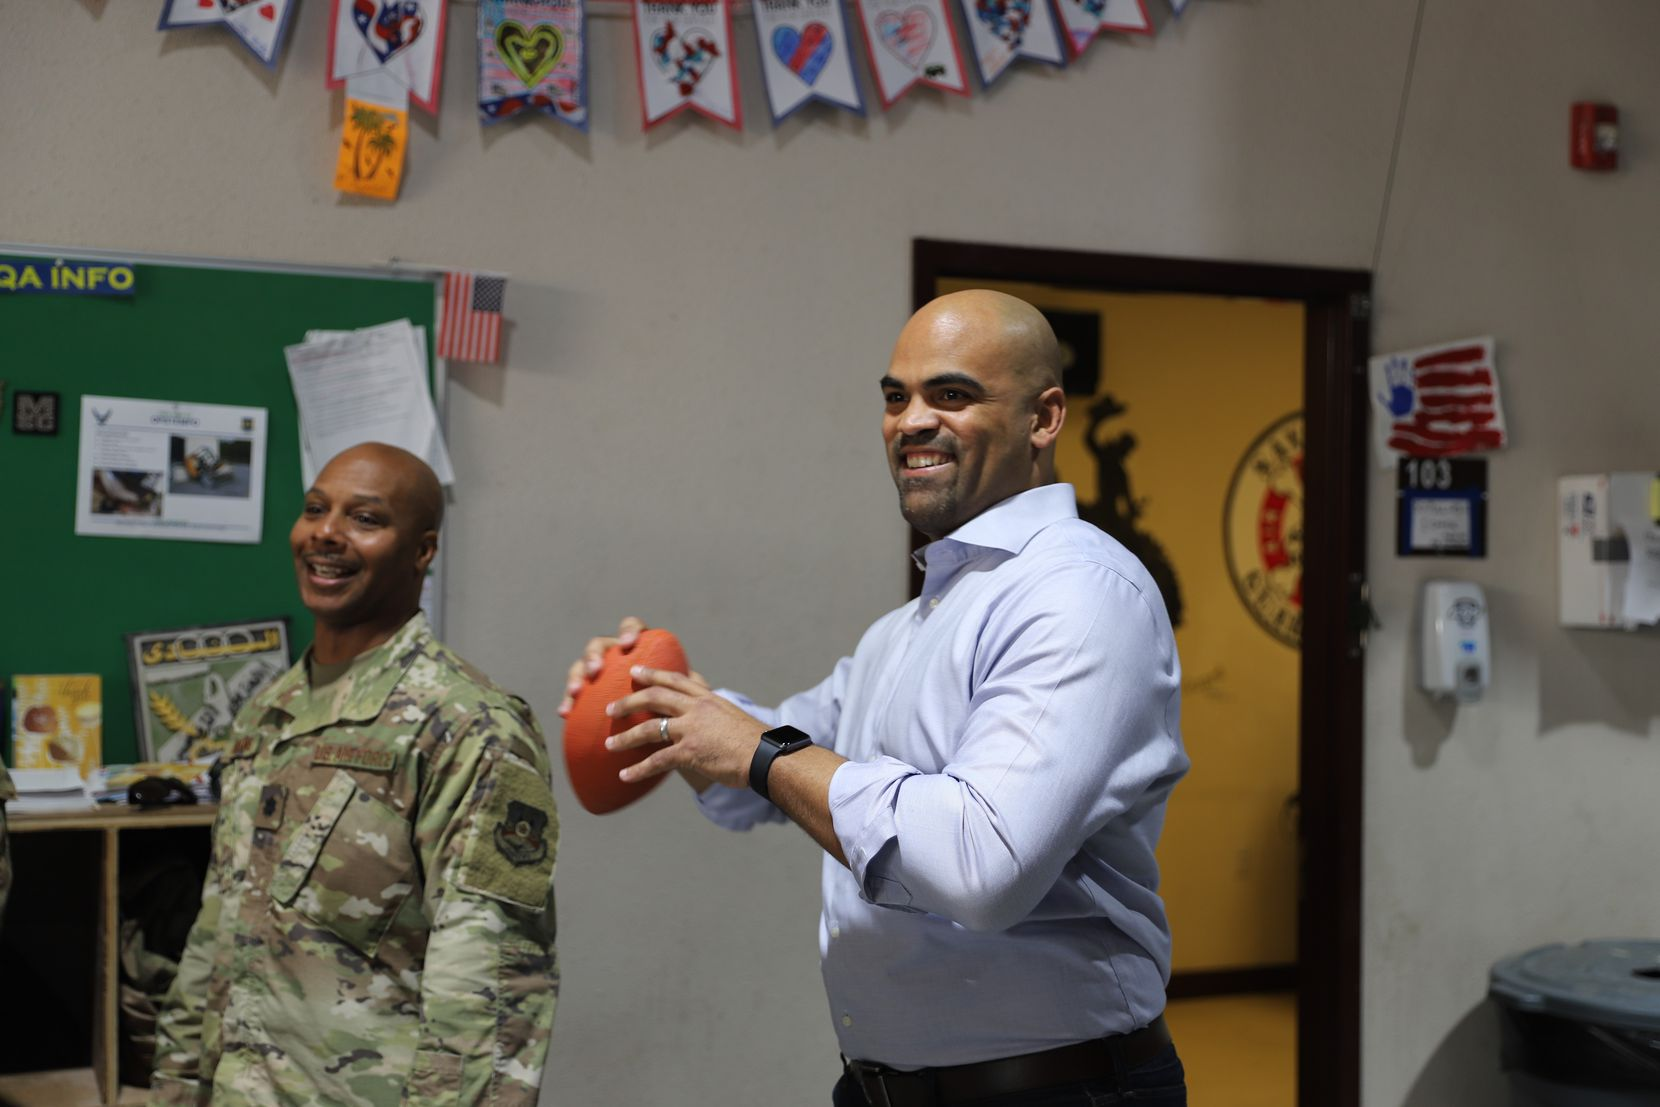 Rep. Colin Allred, D-Dallas, throws a football at Camp Arifjan in Kuwait. Allred visited the base as part of a weeklong trip to visit soldiers in Kuwait and Afghanistan from Nov. 25 to Dec. 1.